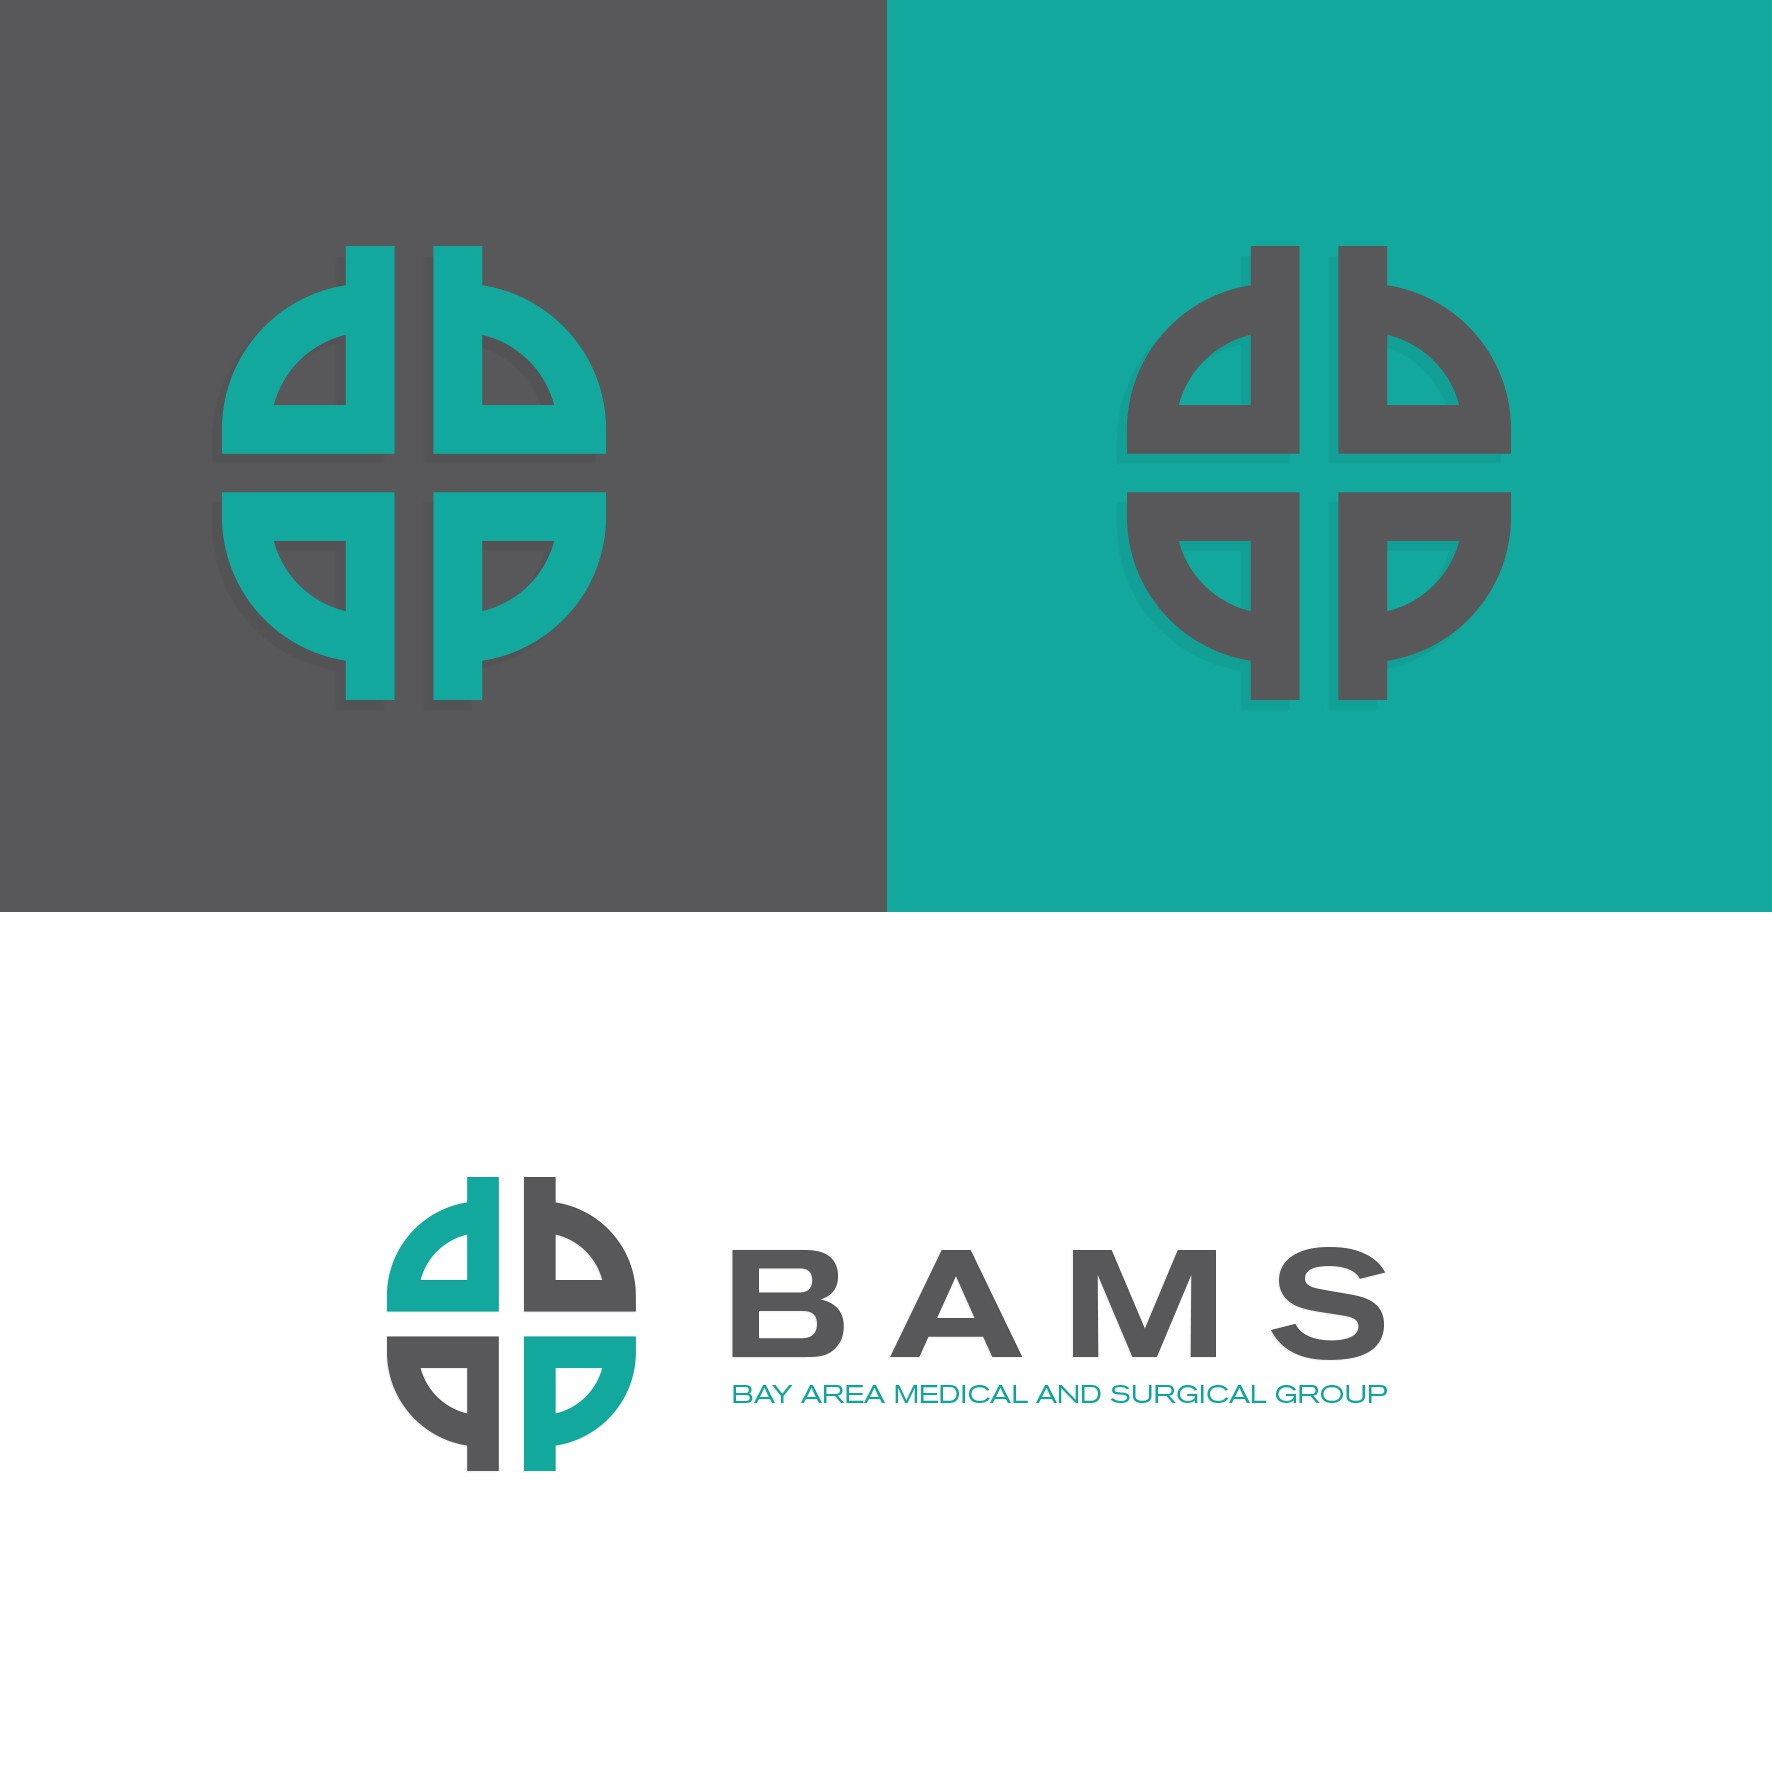 Please help us create a cool, simple,  and elegant logo!